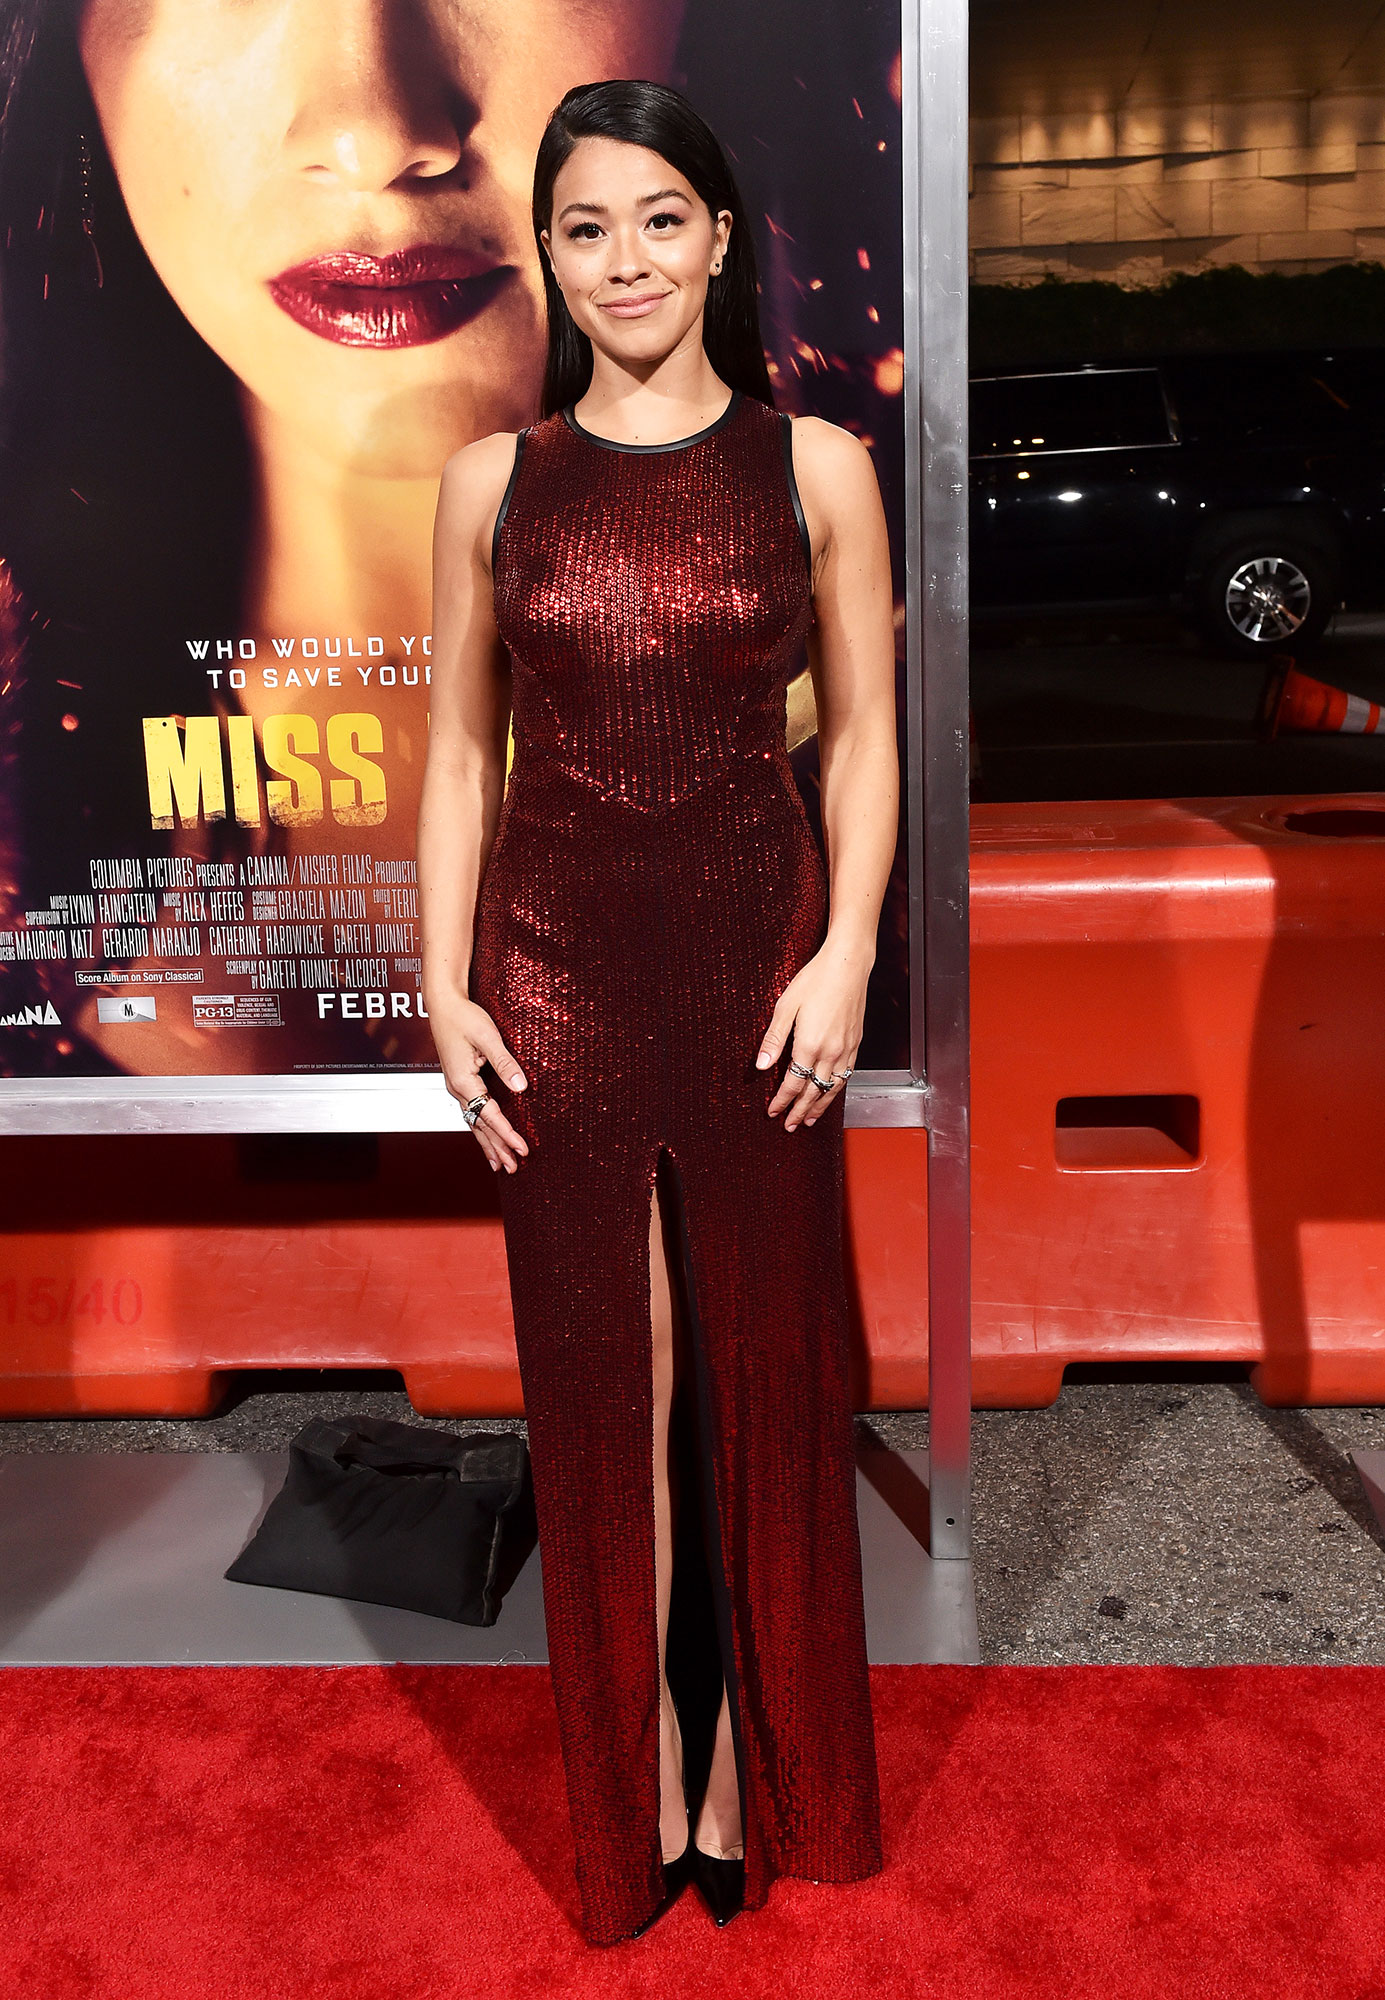 Stylish Burgundy Gina Rodriguez - In a sequin Julien Macdonald on Jan. 30.